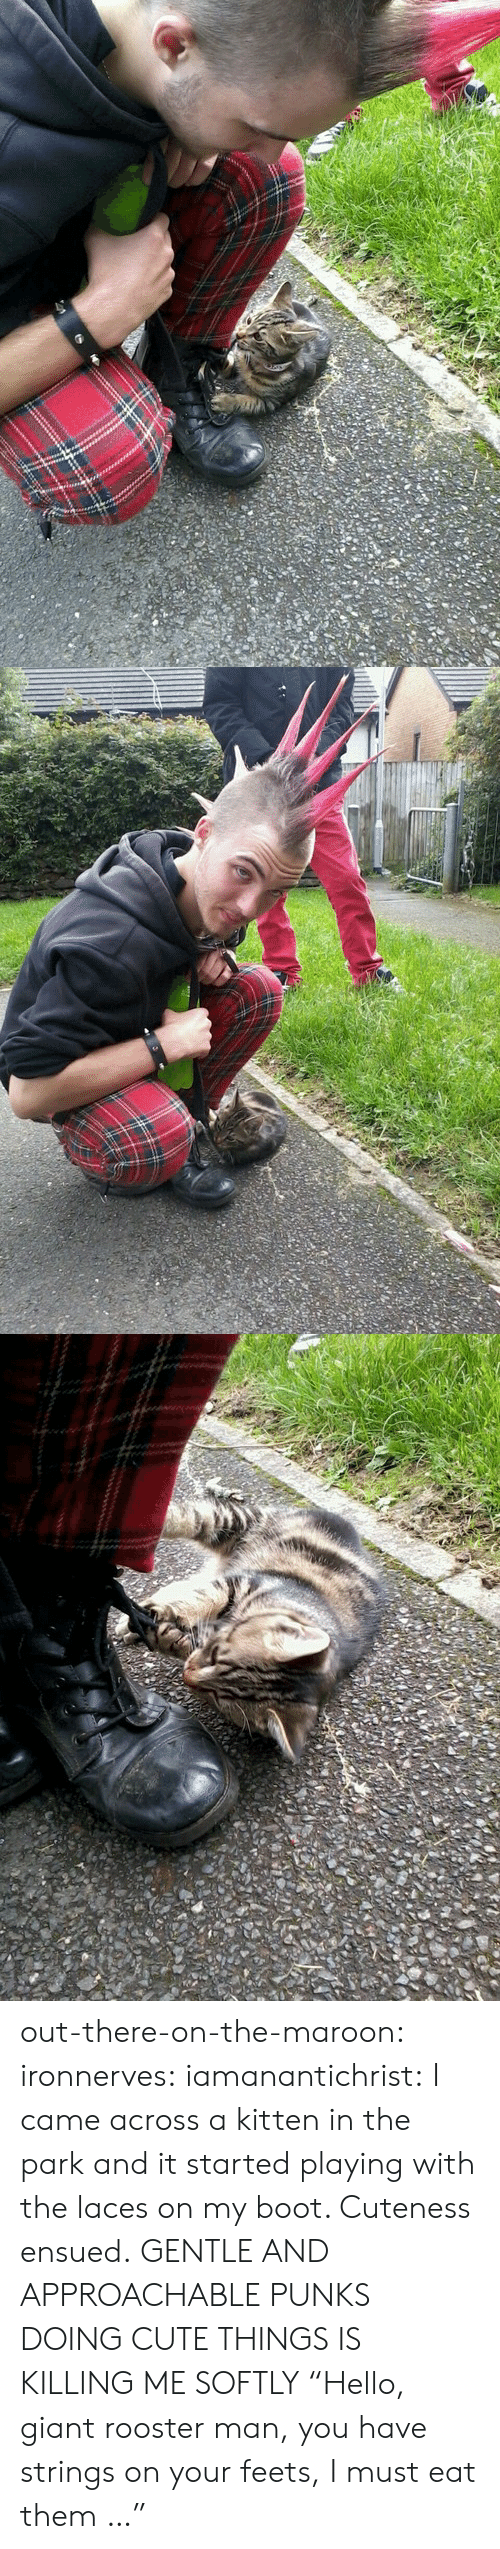 """Booted: out-there-on-the-maroon:  ironnerves:  iamanantichrist:  I came across a kitten in the park and it started playing with the laces on my boot. Cuteness ensued.  GENTLE AND APPROACHABLE PUNKS DOING CUTE THINGS IS KILLING ME SOFTLY  """"Hello, giant rooster man, you have strings on your feets, I must eat them …"""""""